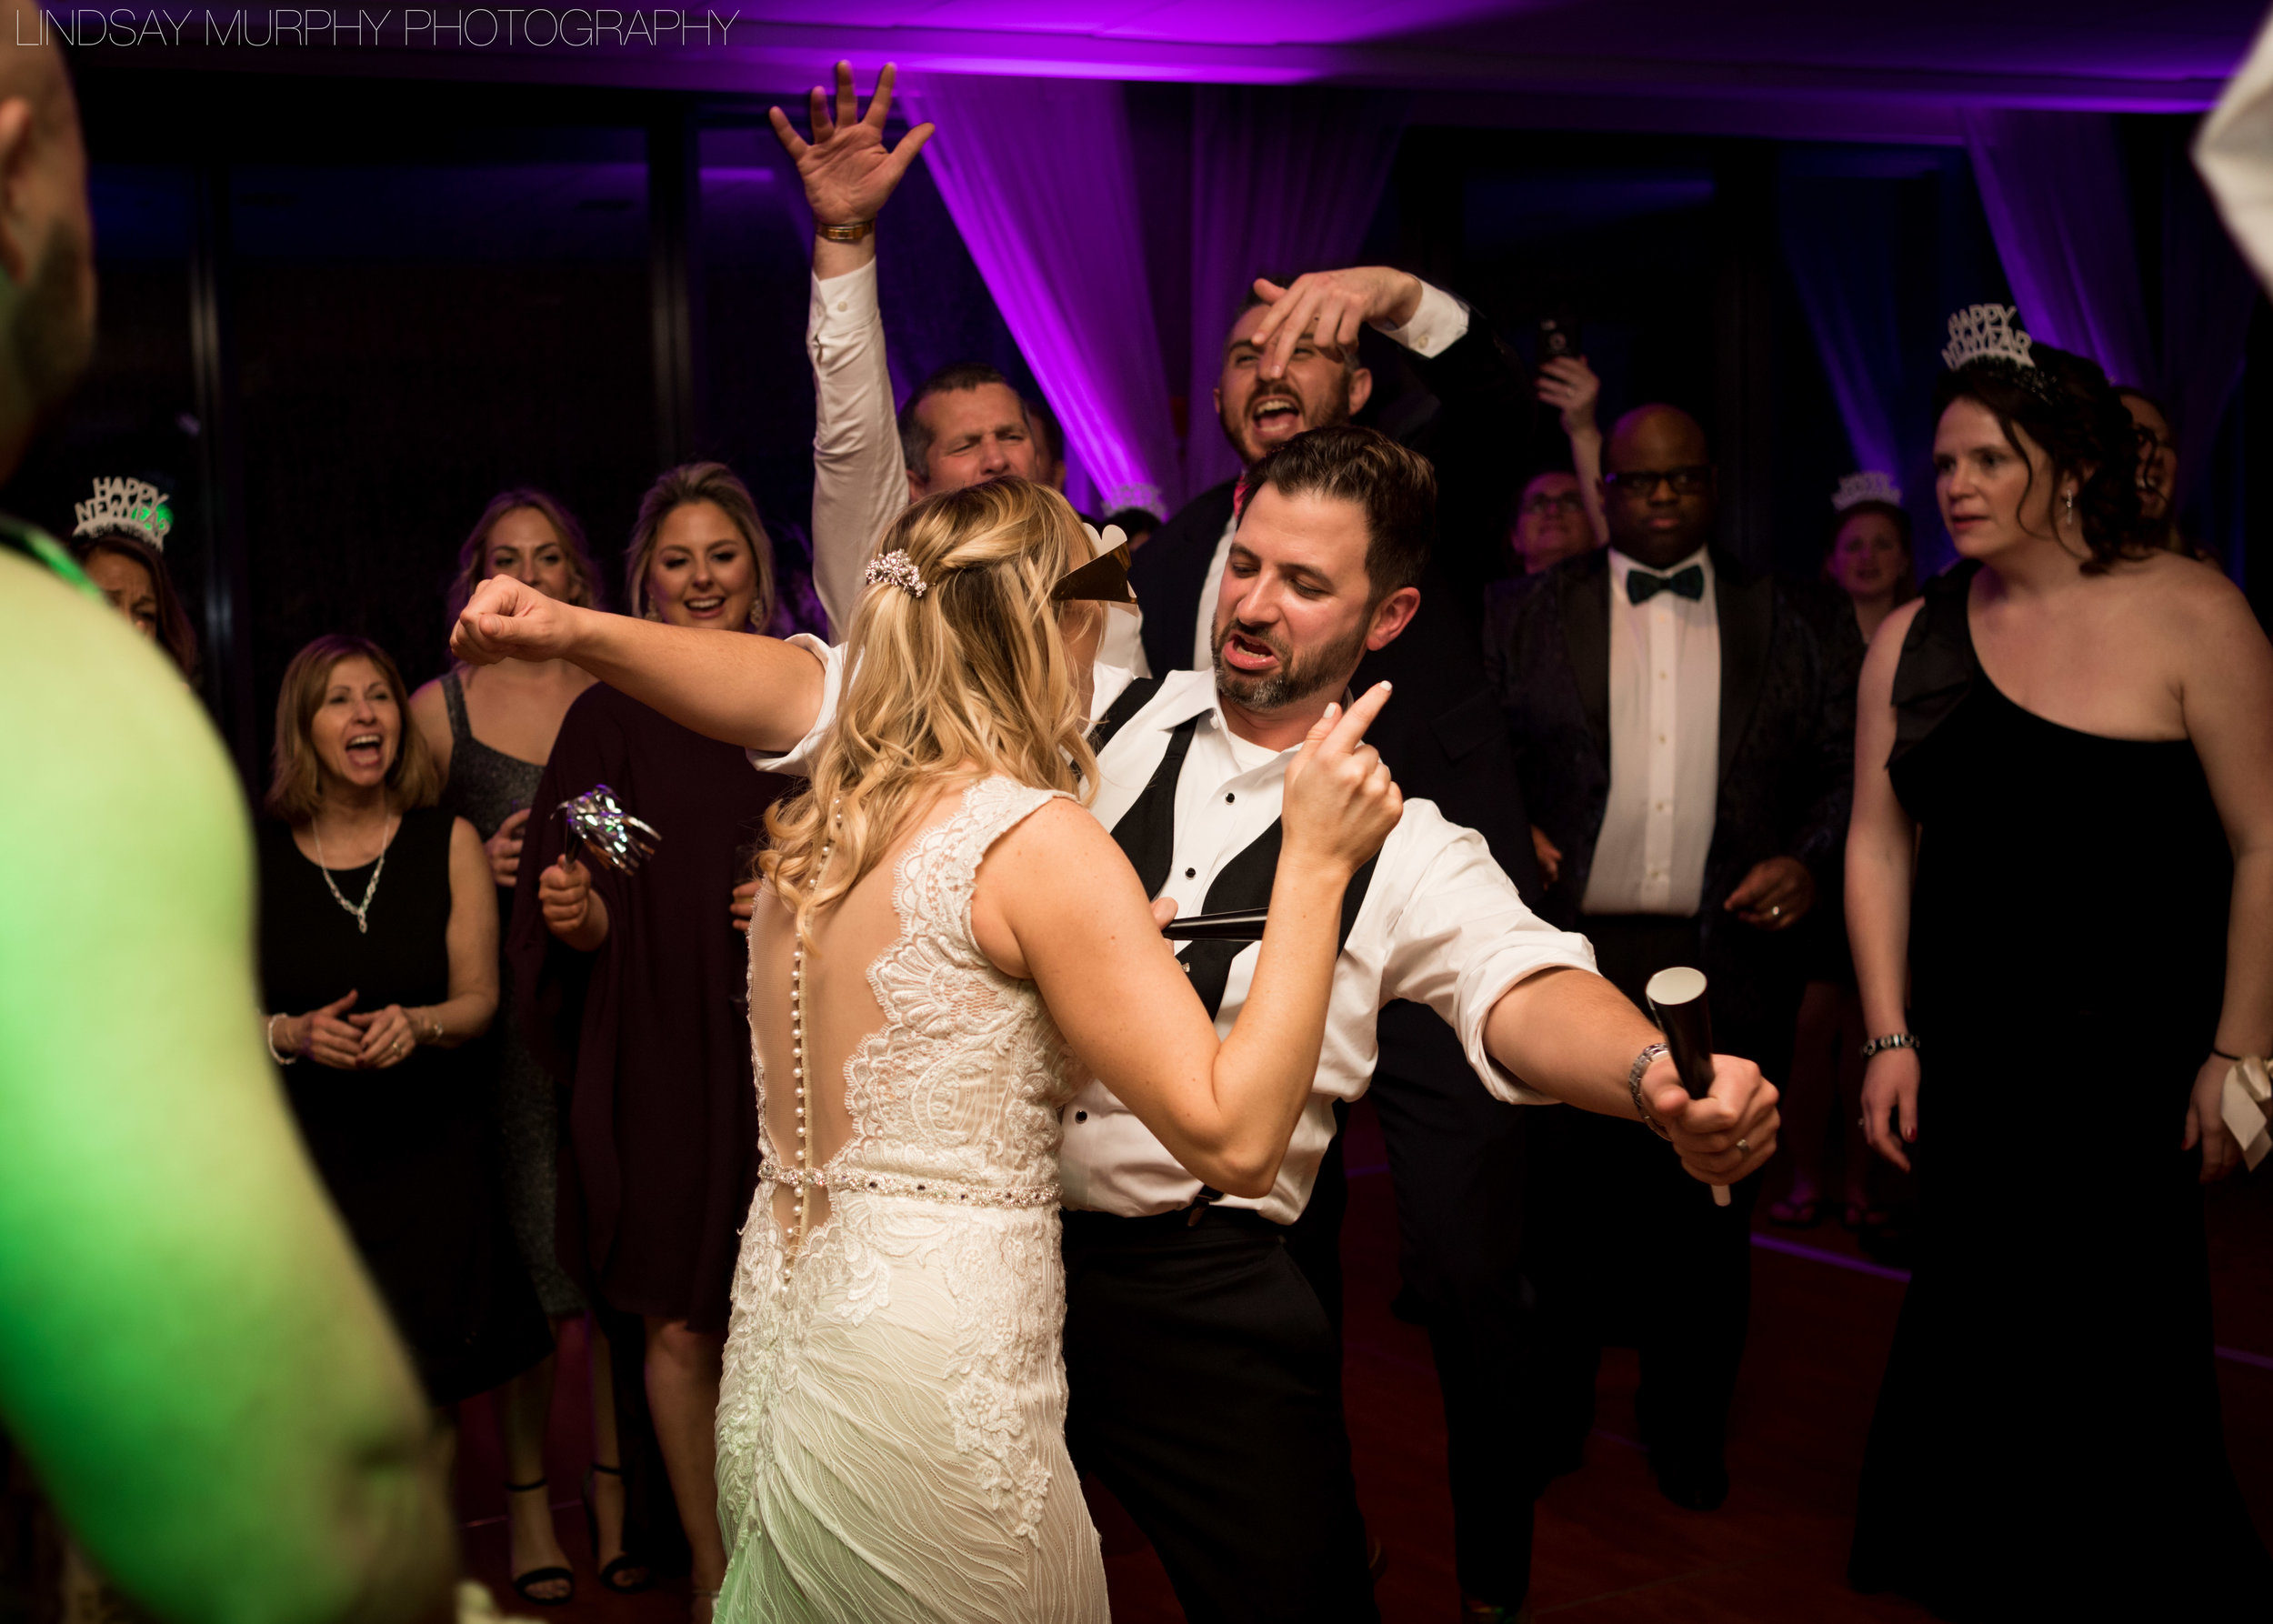 boston_wedding_photographer-605.jpg